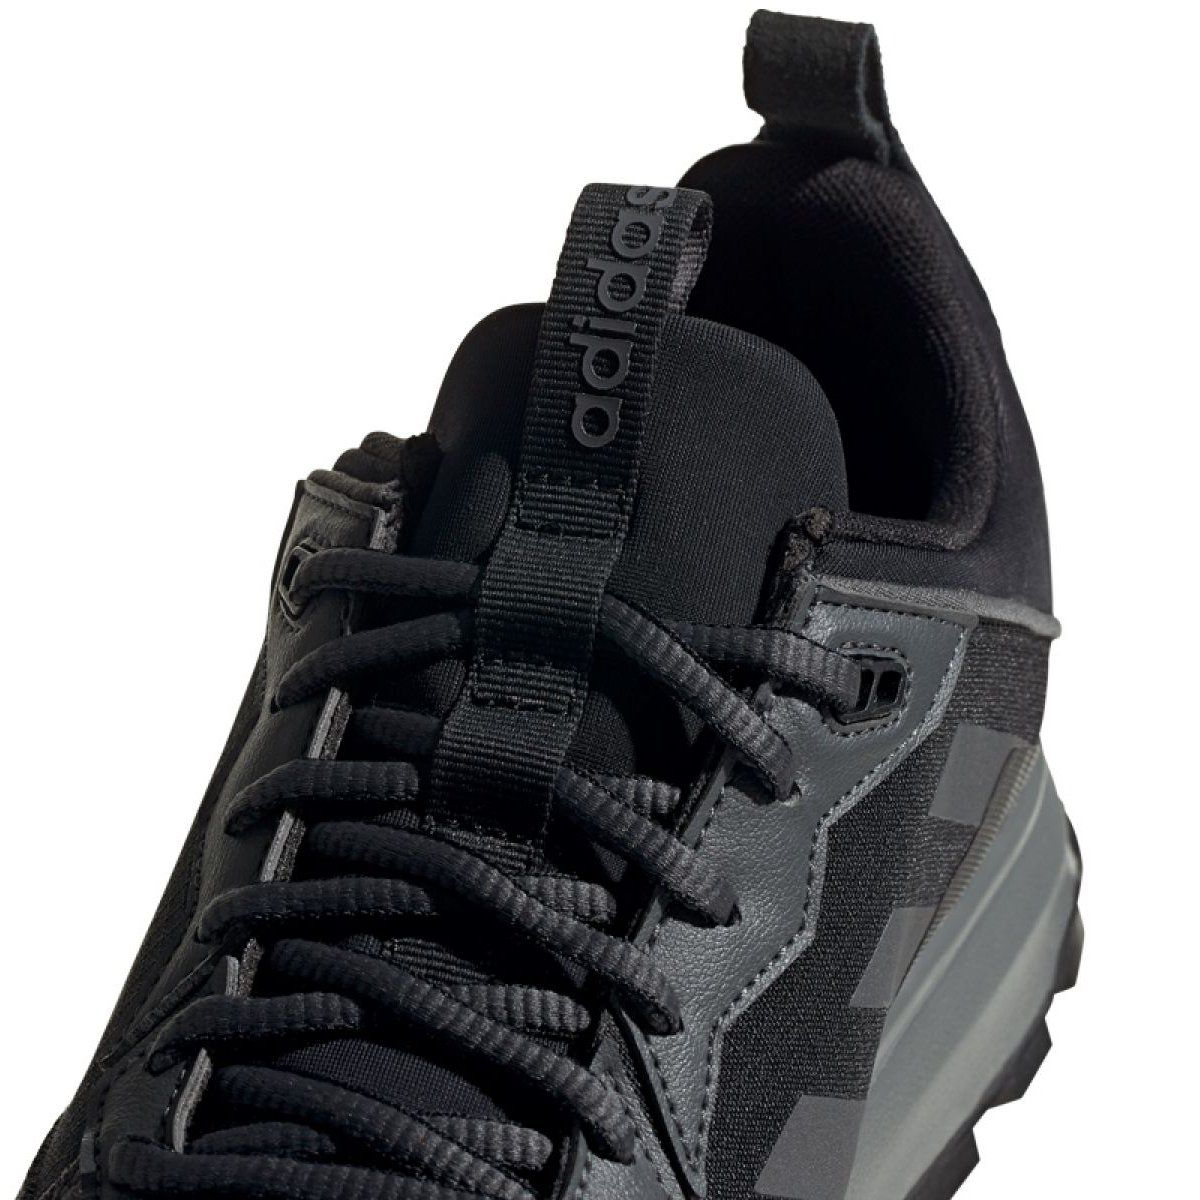 Adidas Response Trail M Eg0000 Running Shoes Black Adidas Outfit Shoes Black Running Shoes Adidas Shoes Outlet